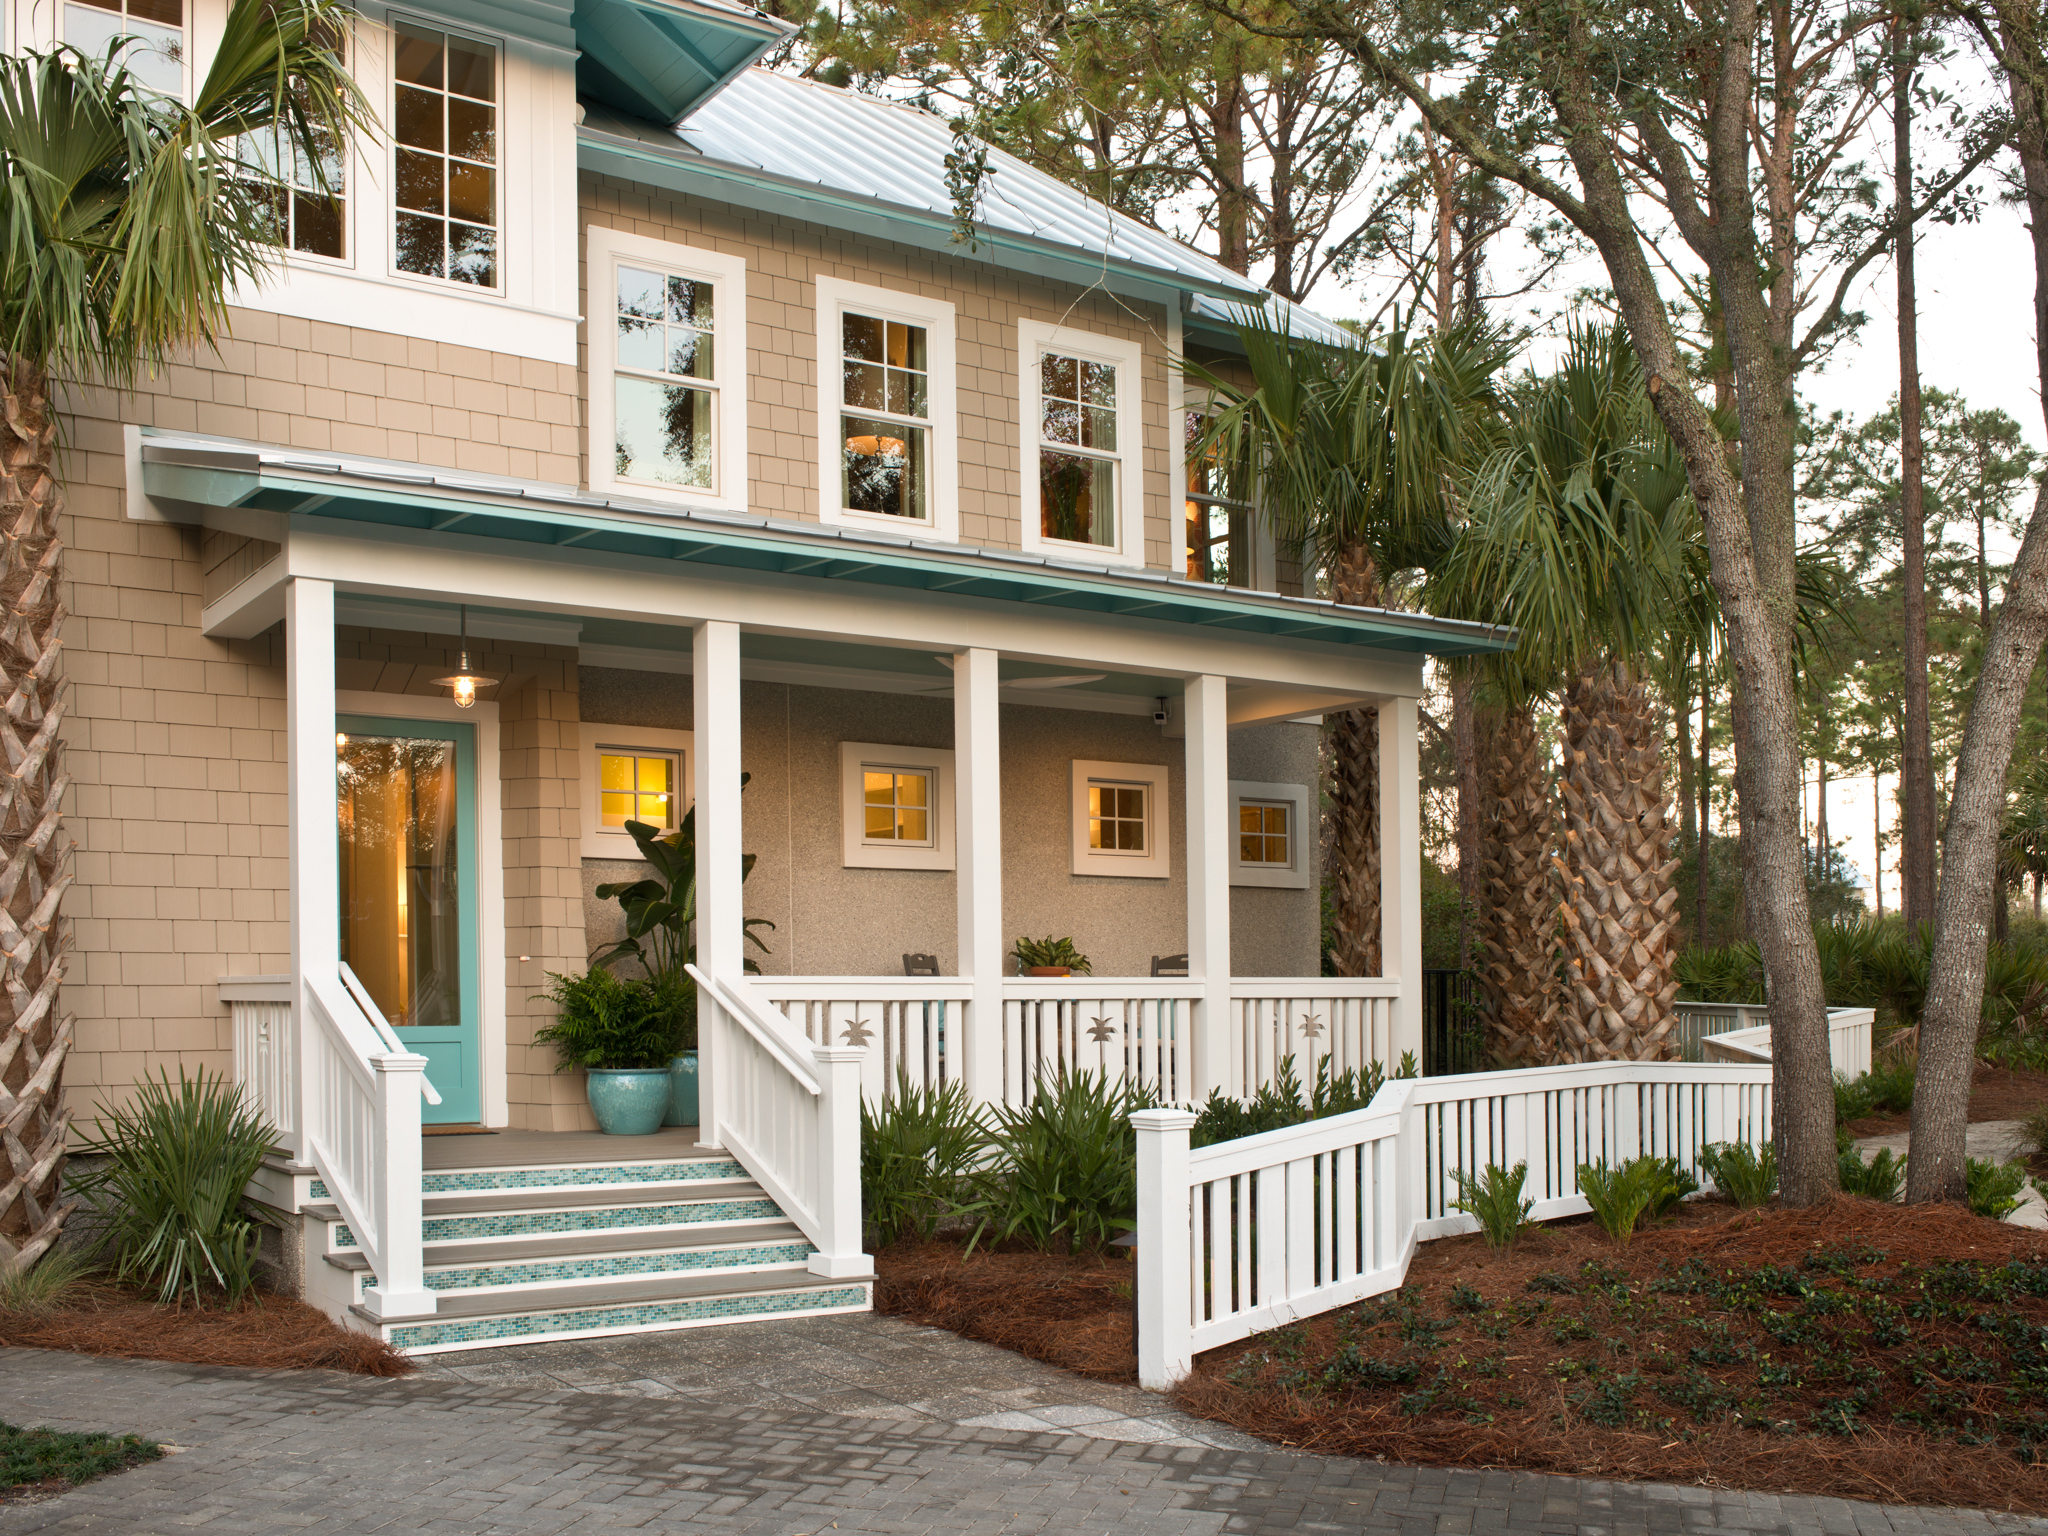 The design of HGTV Smart Home 2013 is inspired by shingle-style vacation homes constructed in Atlantic, Neptune and Jacksonville Beach communities during the early 1900s. HGTV, HGTV Smart Home, and HGTV Smart Home Giveaway are trademarks of Scripps Networks, LLC. Used with permission; all rights reserved. Photo(c) 2013 Scripps Networks, LLC.